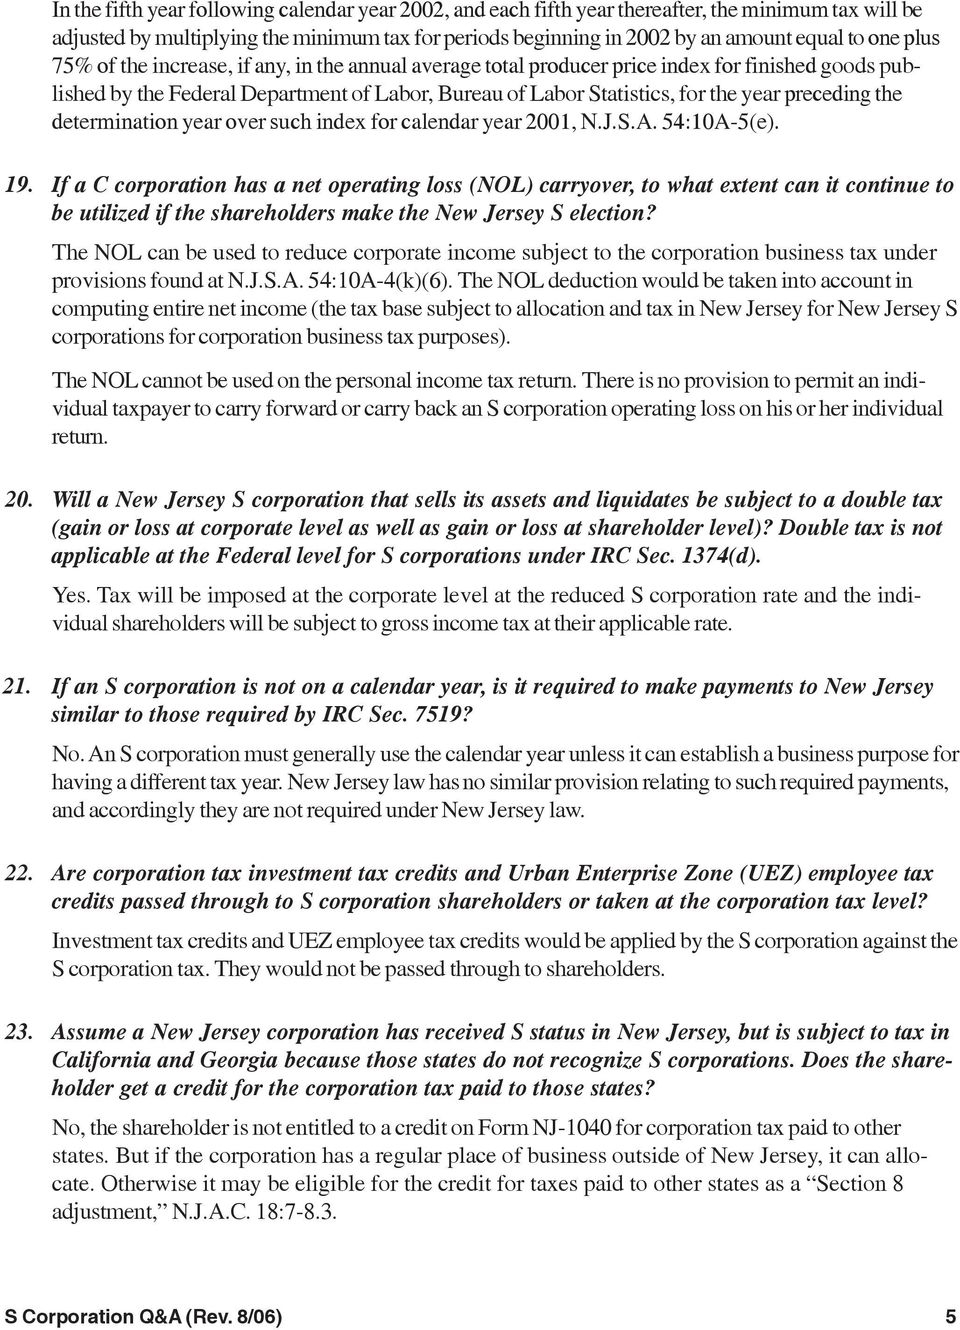 S Corporation Questions & Answers - Pdf